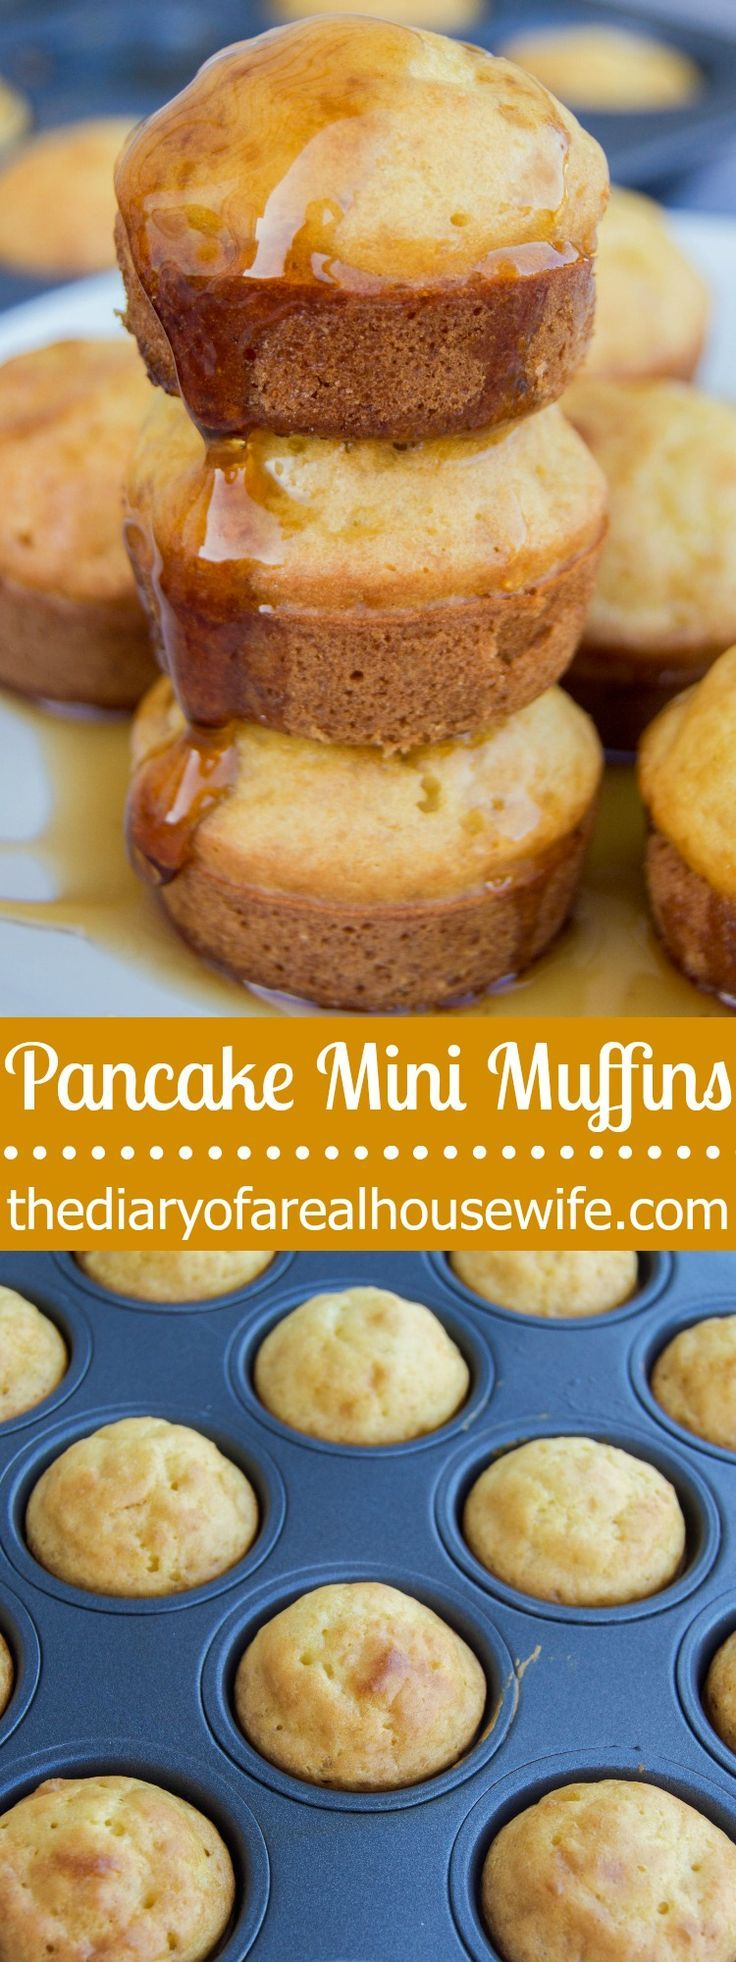 Pancake Mini Muffins. The BEST breakfast recipe. My kids loved these and they are perfect to freeze for a quick breakfast idea.